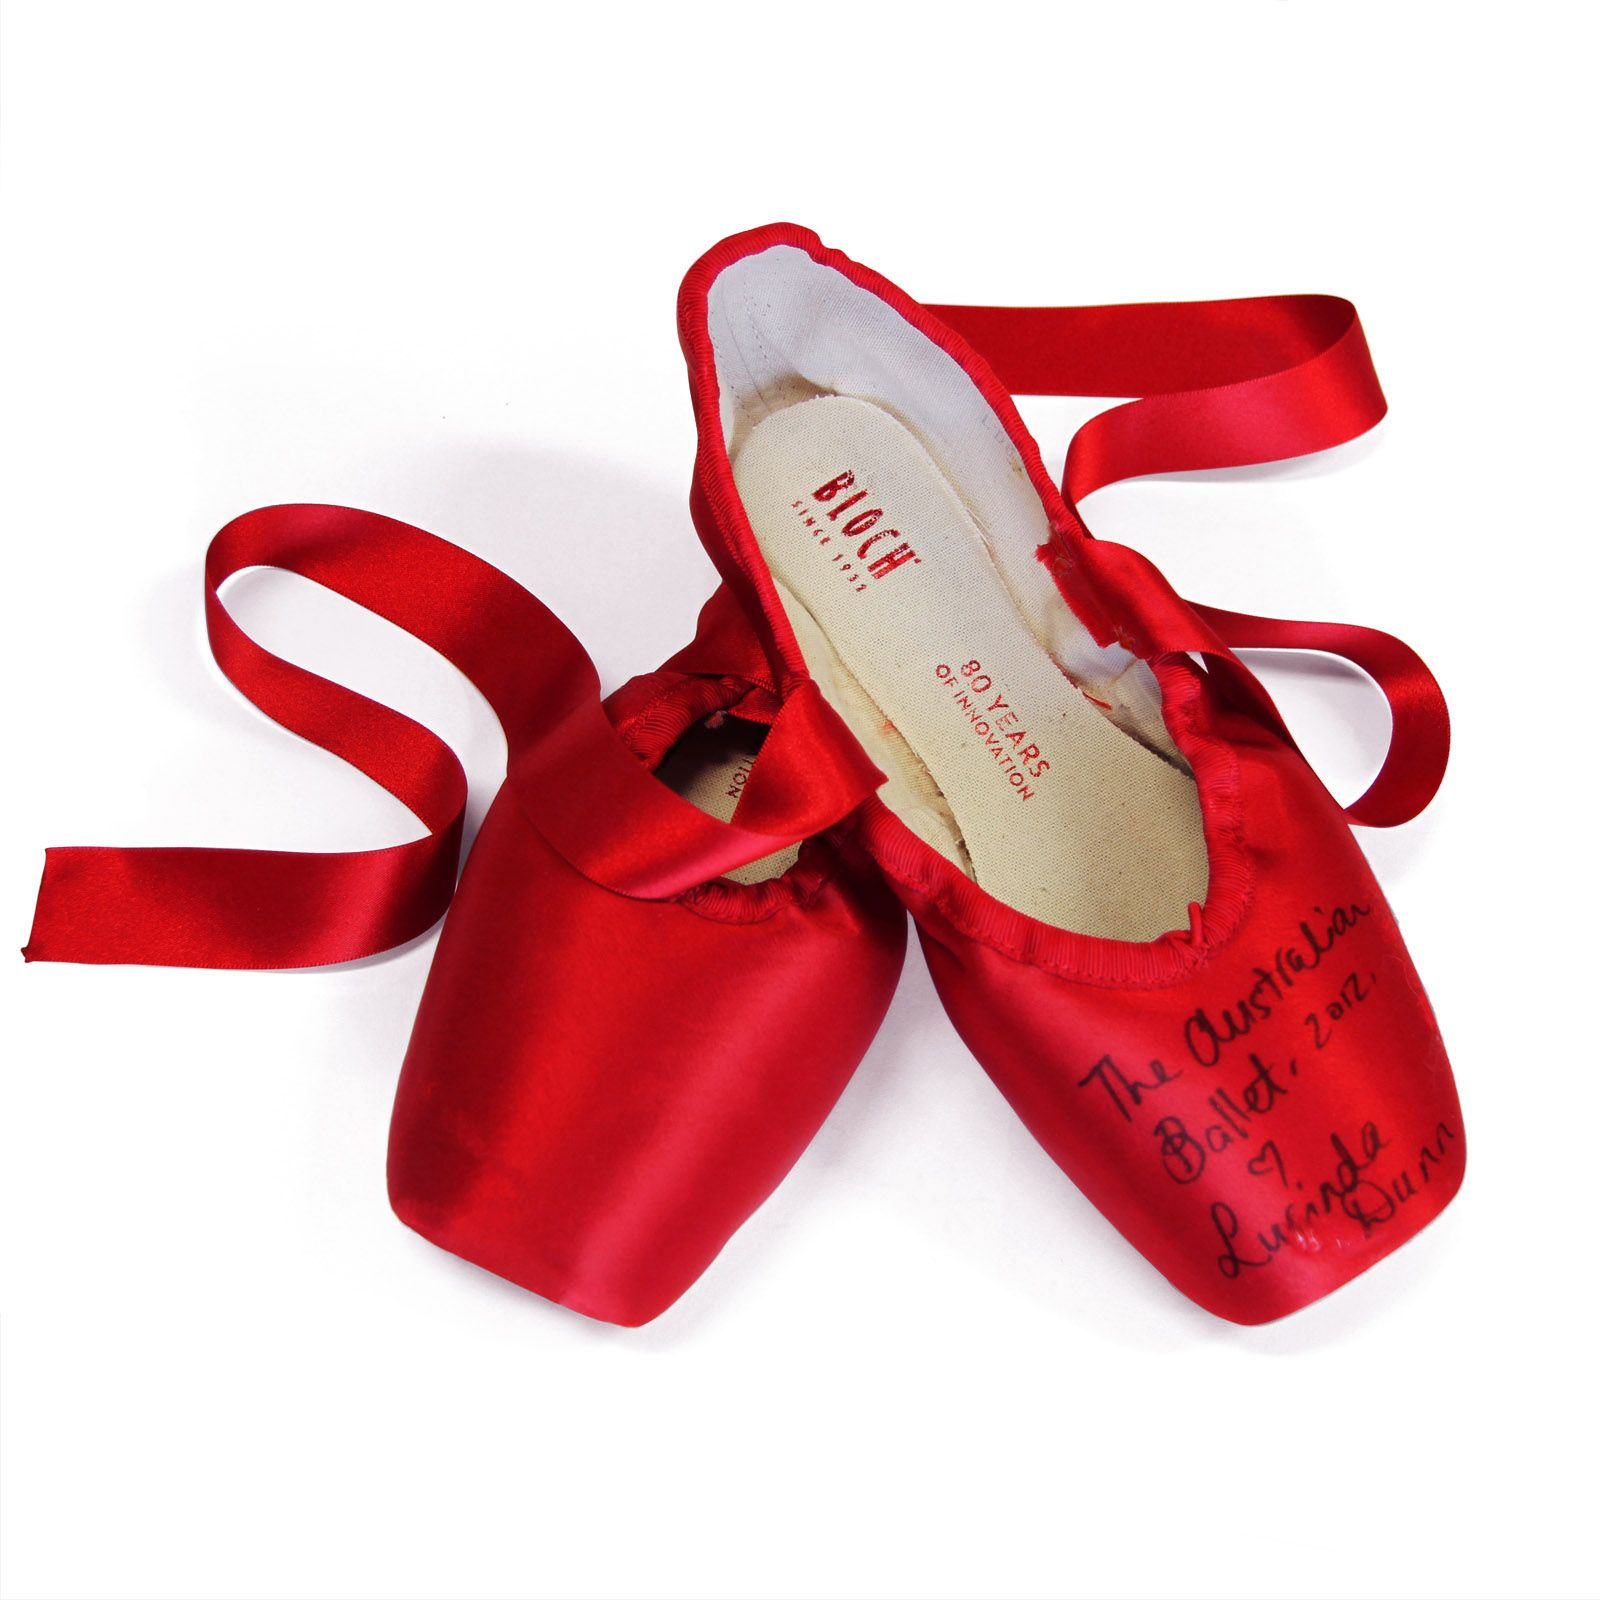 17 Best images about The Red Pointe Shoe Project on Pinterest | To ...